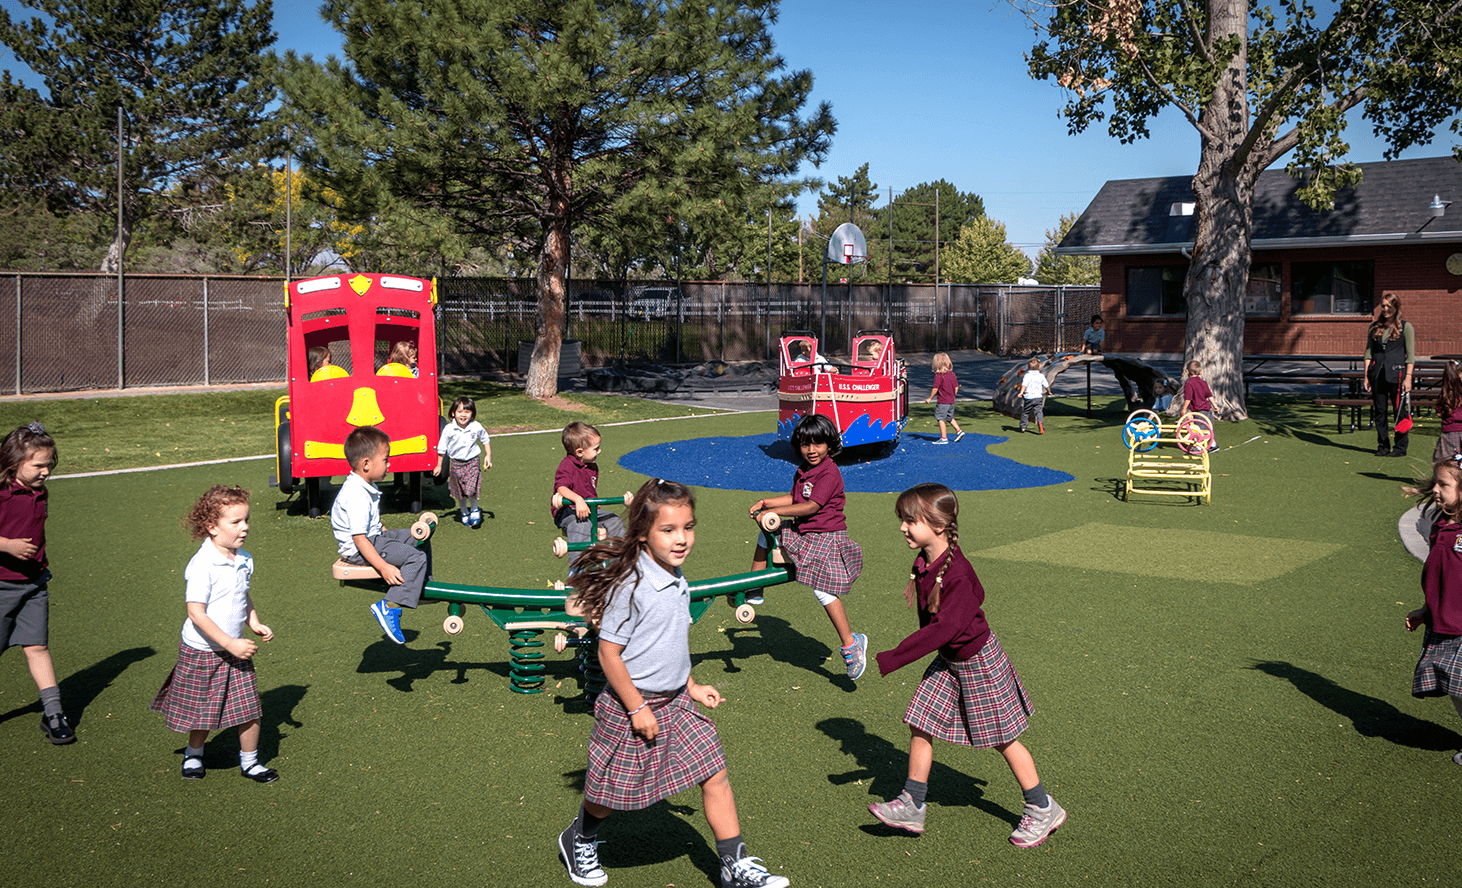 Preschool Playground | Challenger School - West Jordan | Private School In West Jordan, Utah